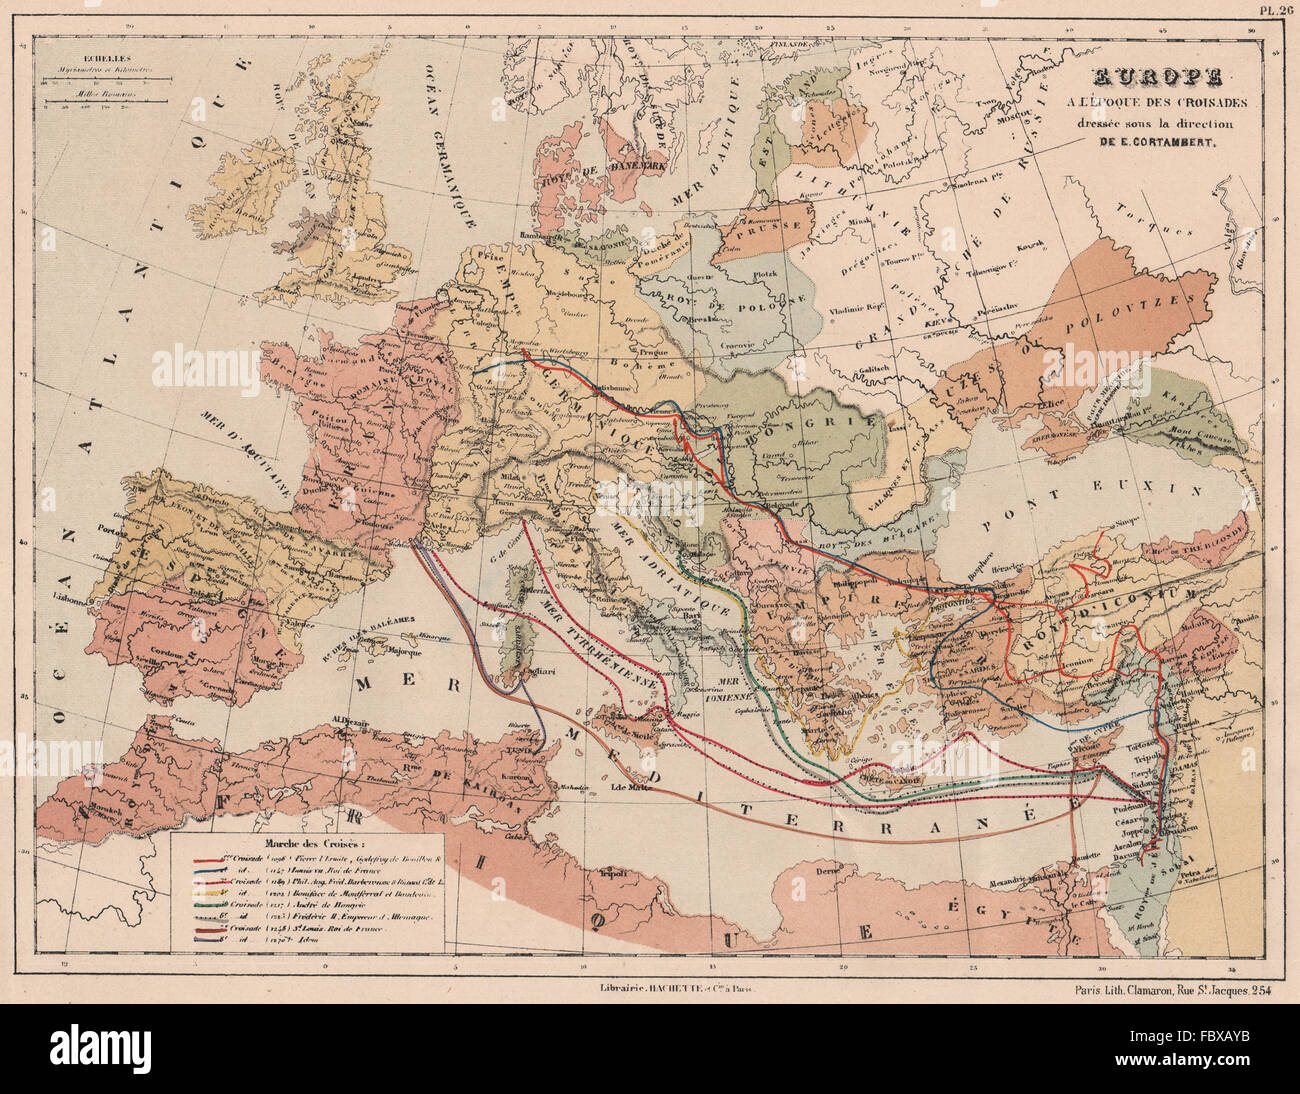 CRUSADES 1096-1270. Showing the 1st-8th Crusades. Europe to Holy Land, 1880 map - Stock Image